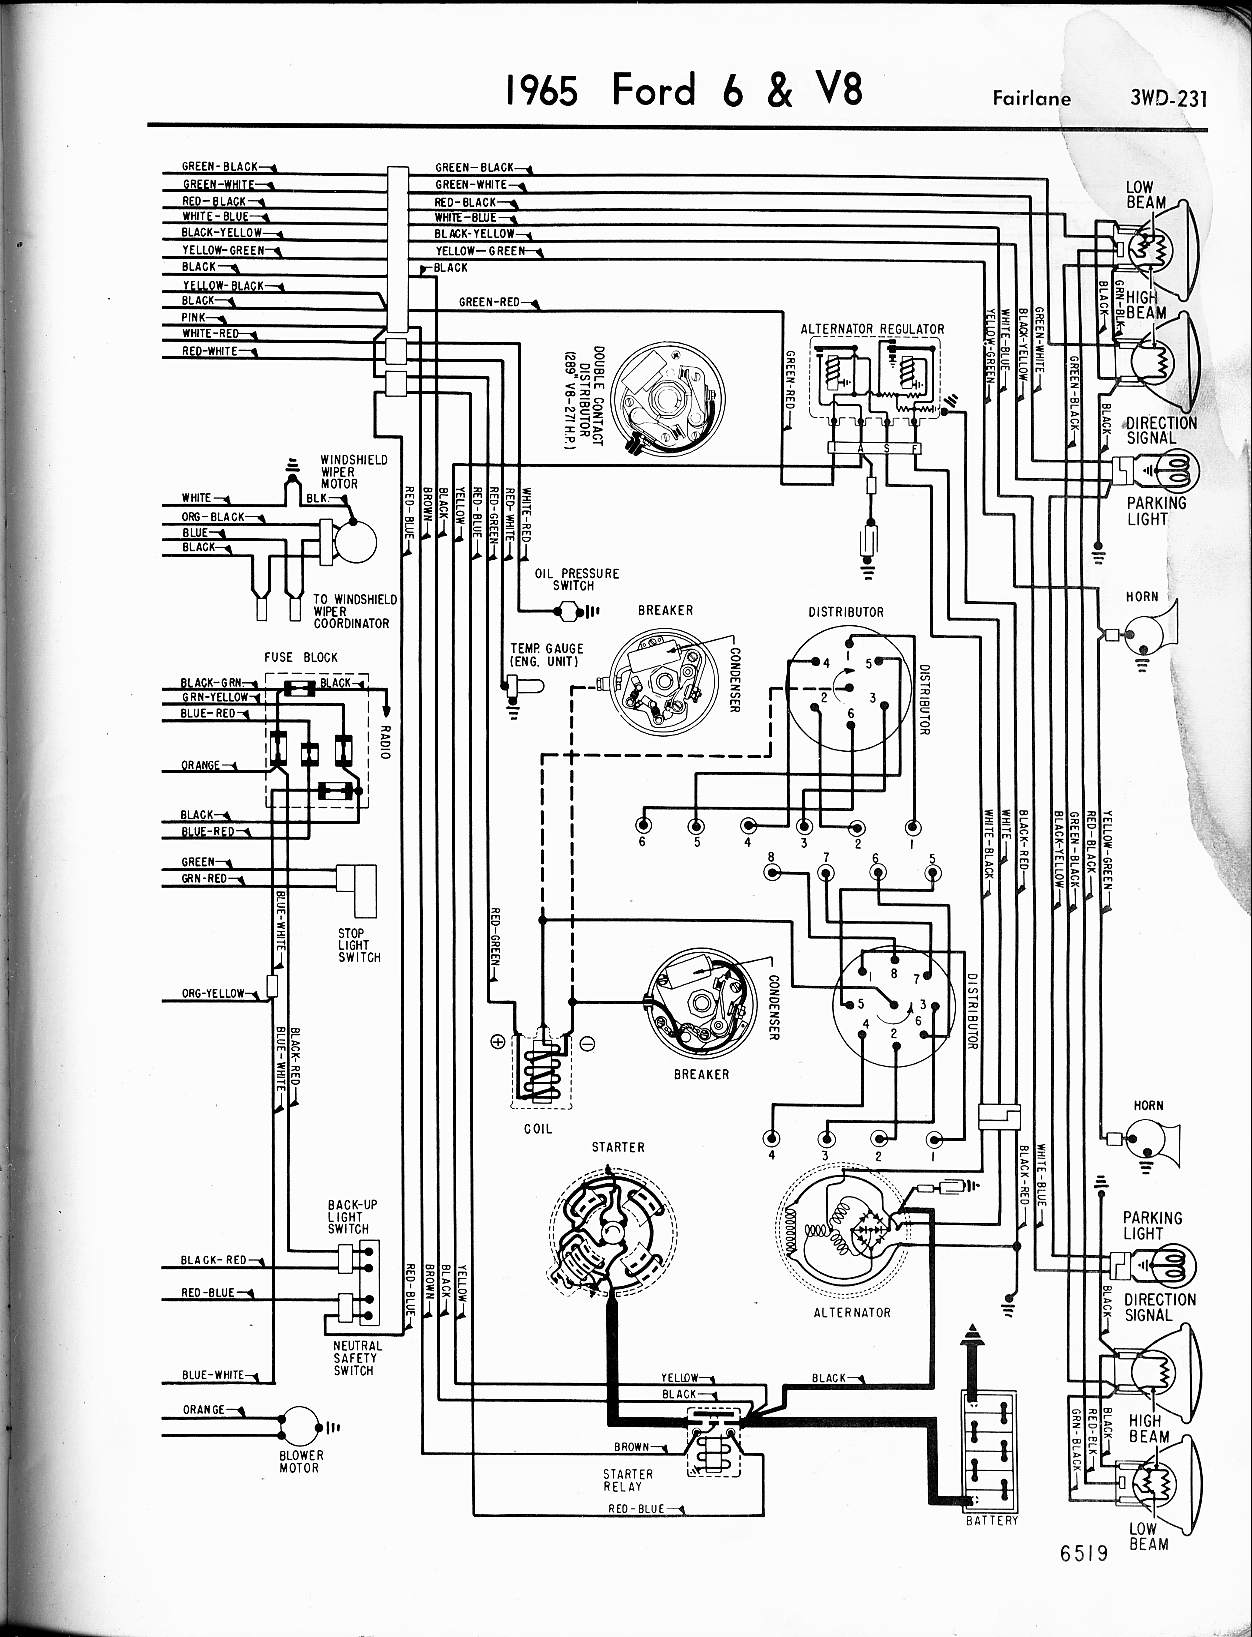 ford wiring diagrams 1965 6 v8 fairlane right